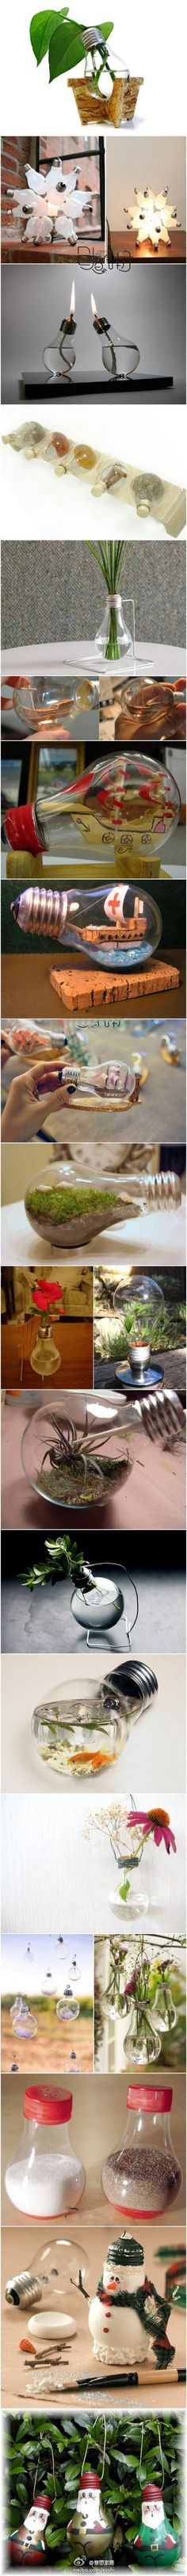 Lite bulb up cycle ideas